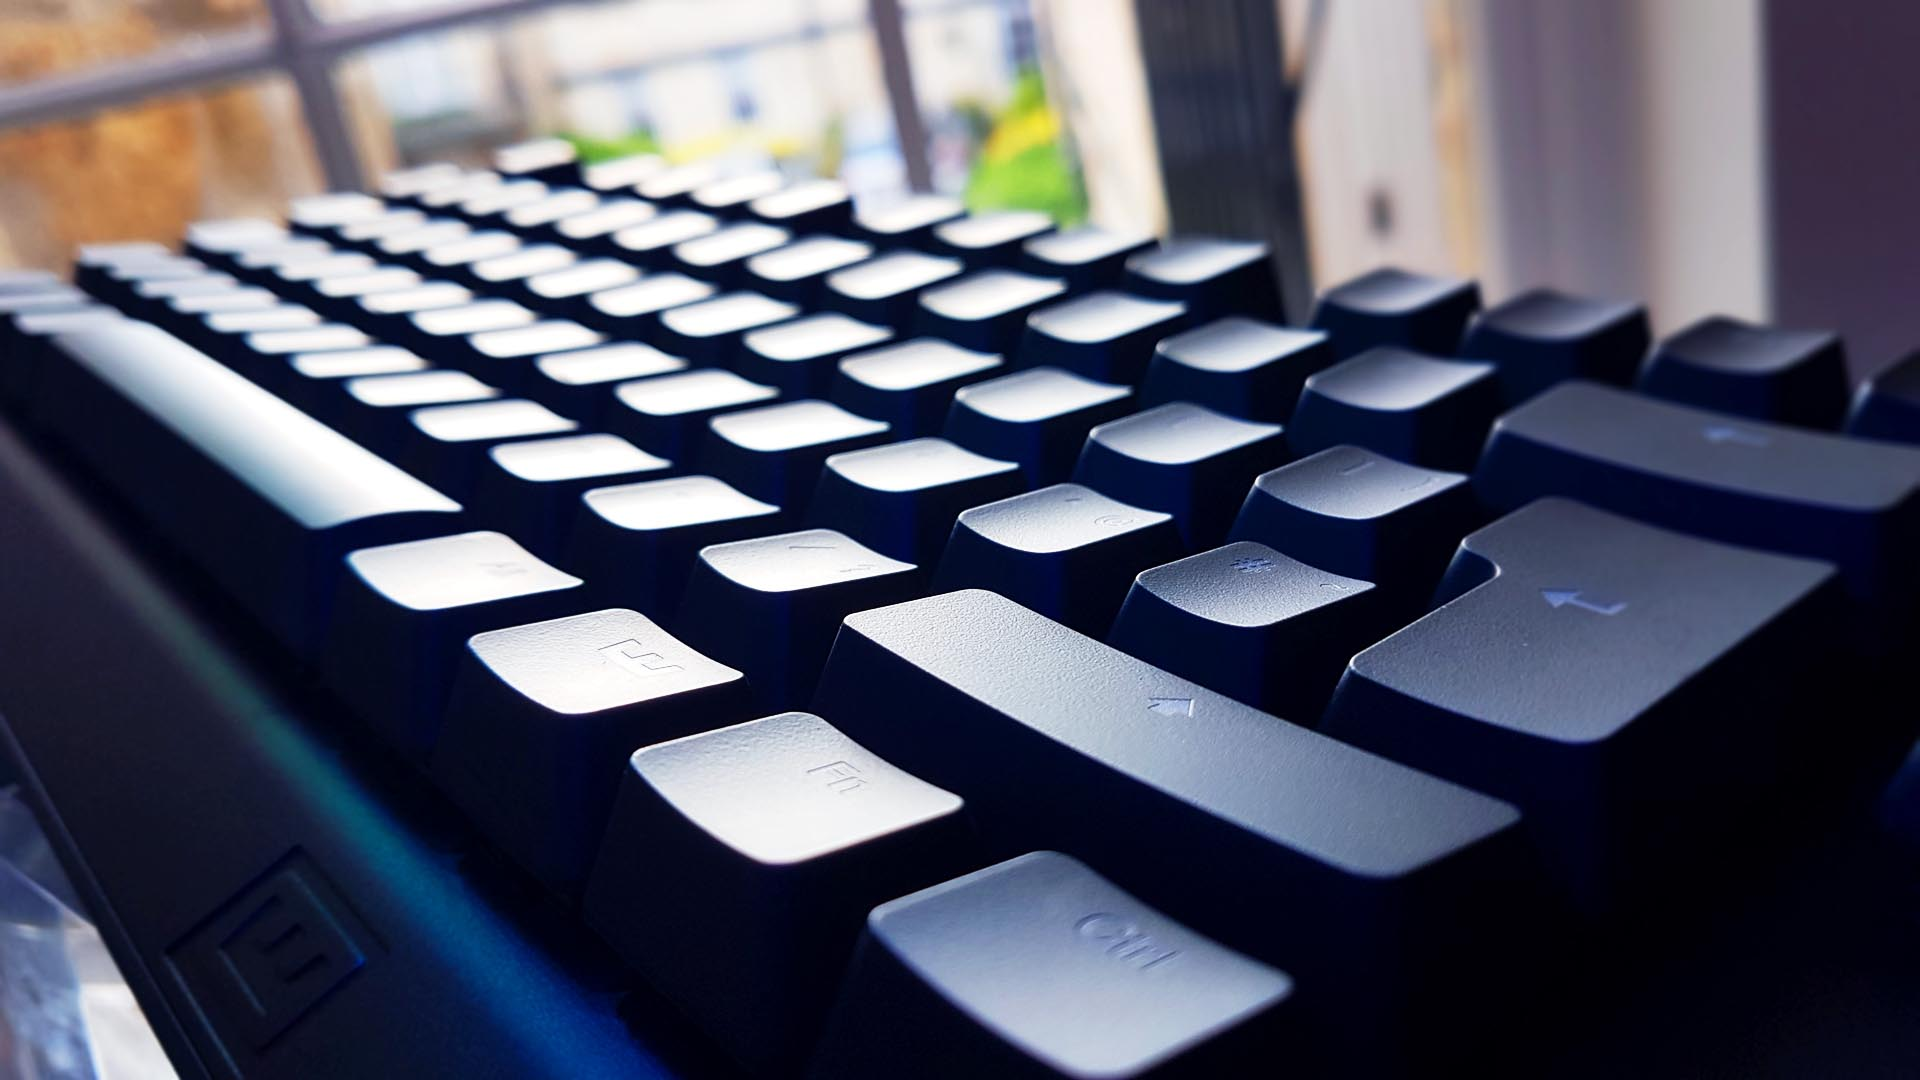 Best gaming keyboard – the top boards in 2021